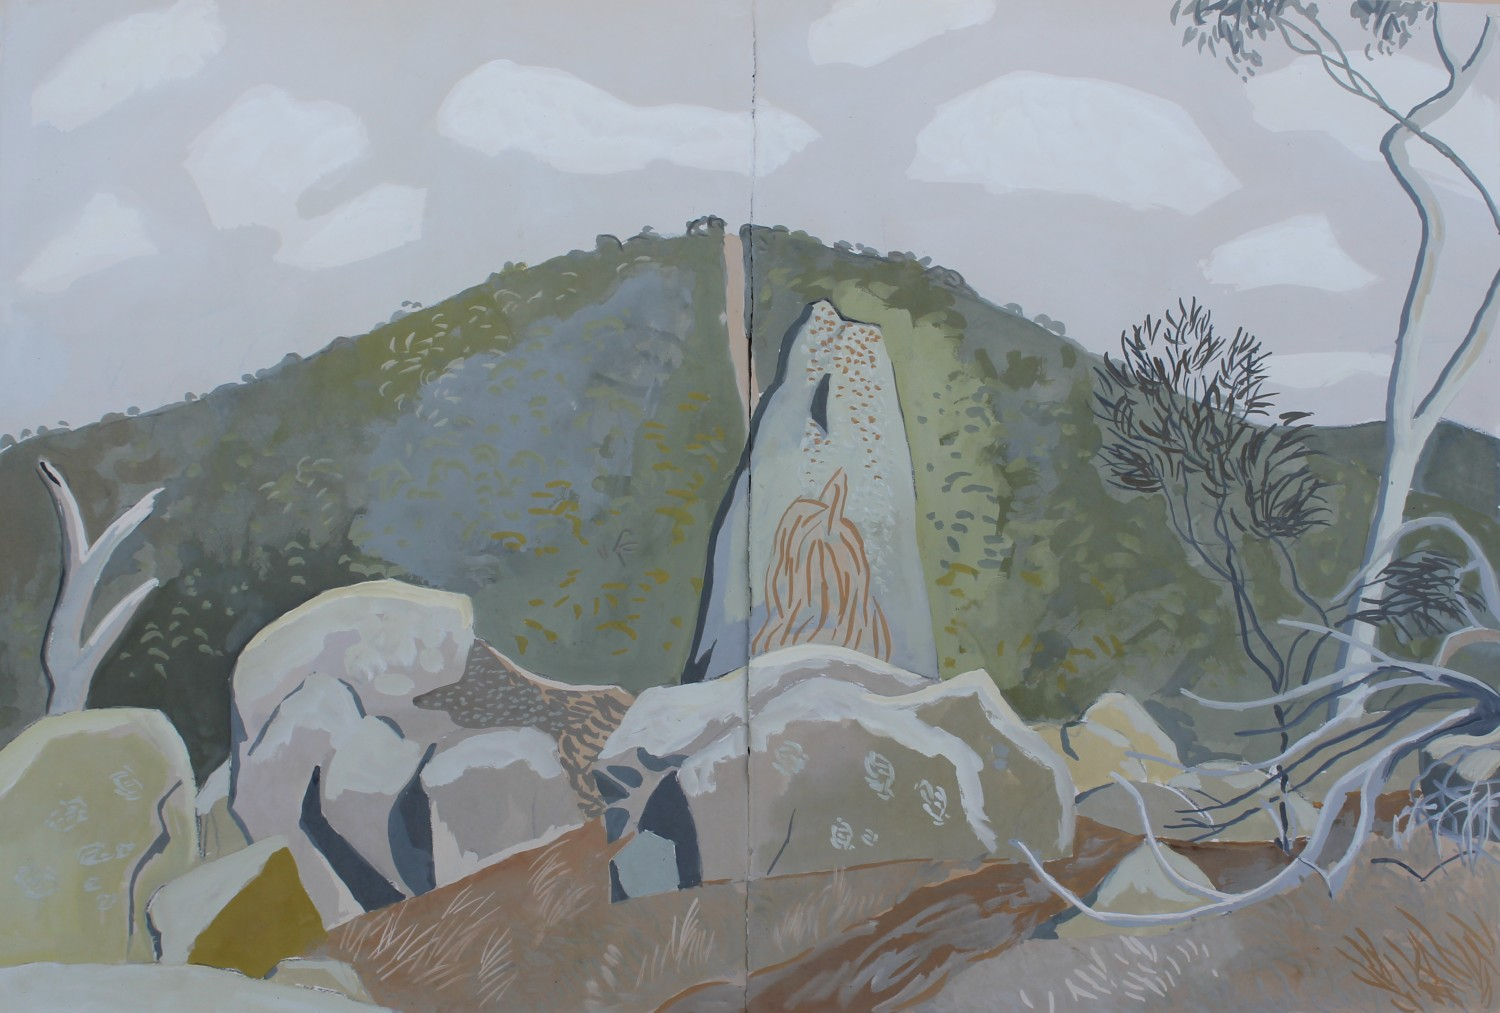 Rocks and Mt Tarrengower 2020 by Mark Dober